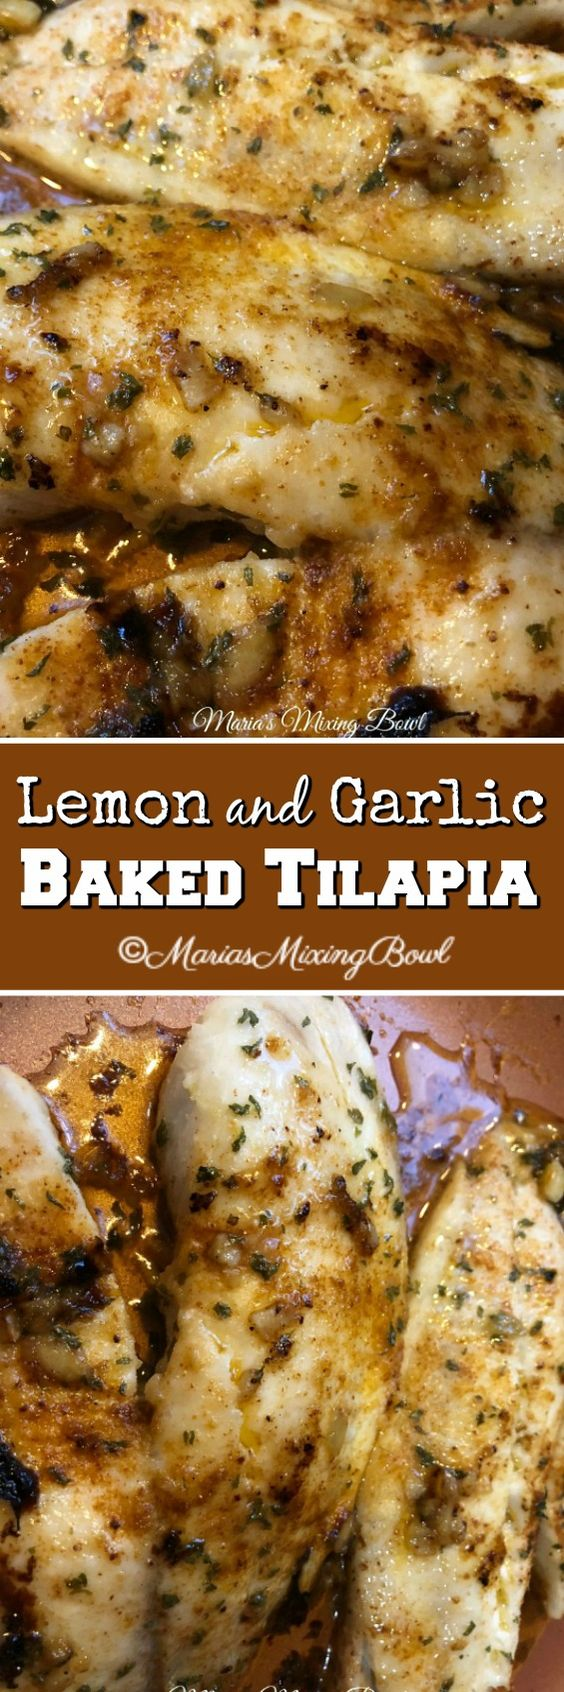 Lemon and Garlic Baked Tilapia - Tilapia fillets are baked to perfection with a topping mixture made with garlic , butter, lemon, parsley and seasonings.